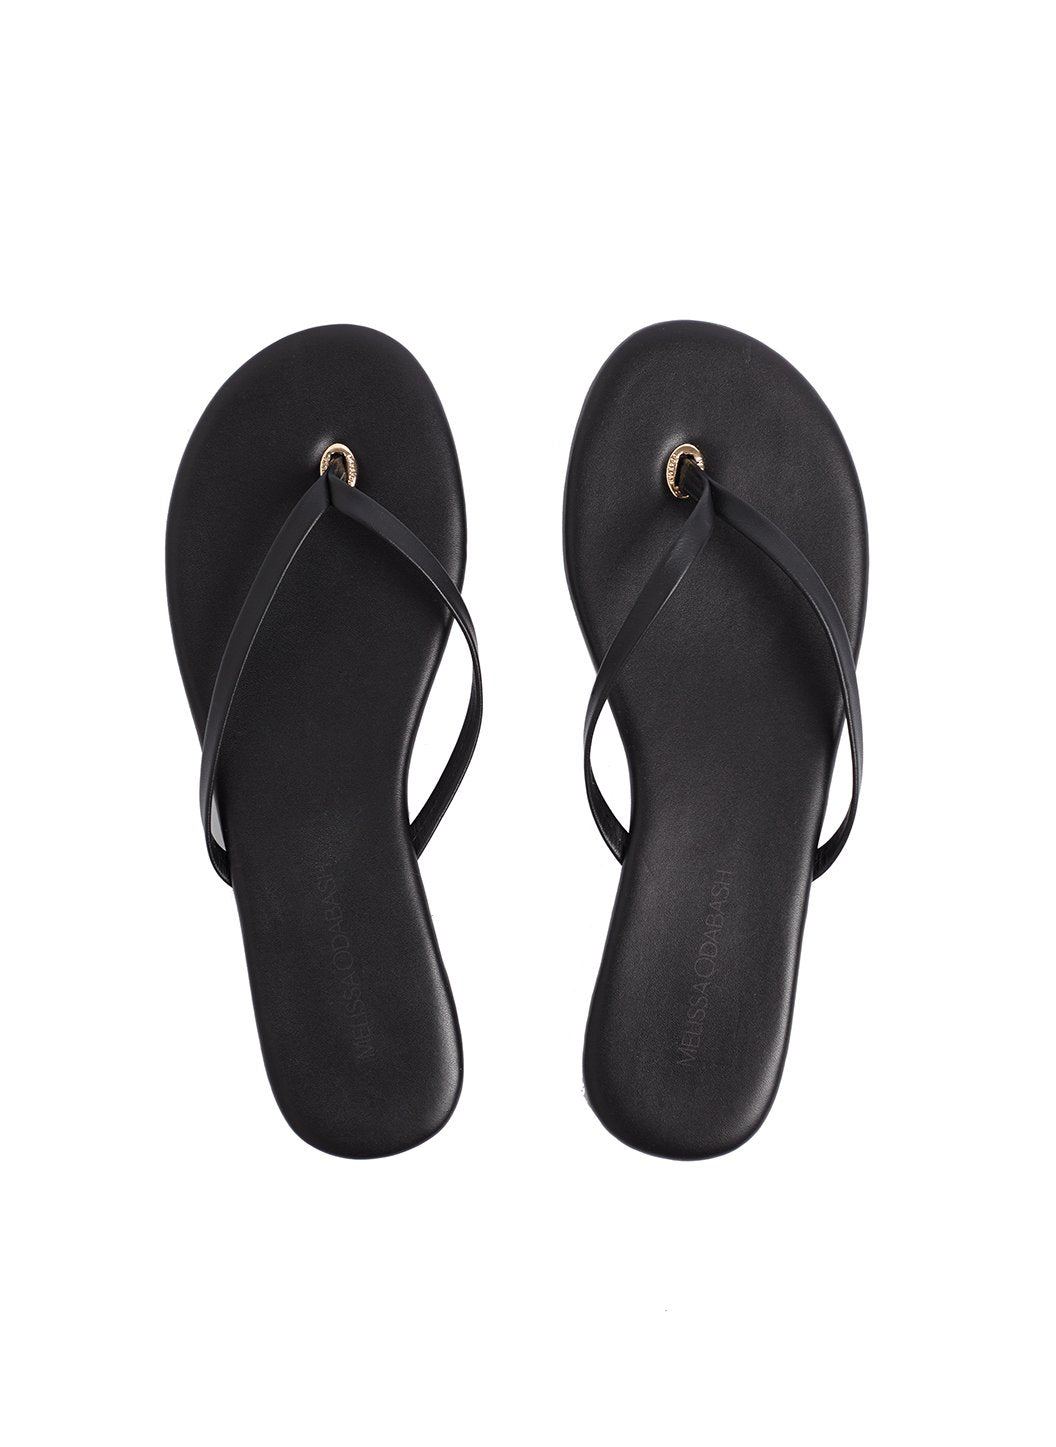 Leather Flip Flops Black